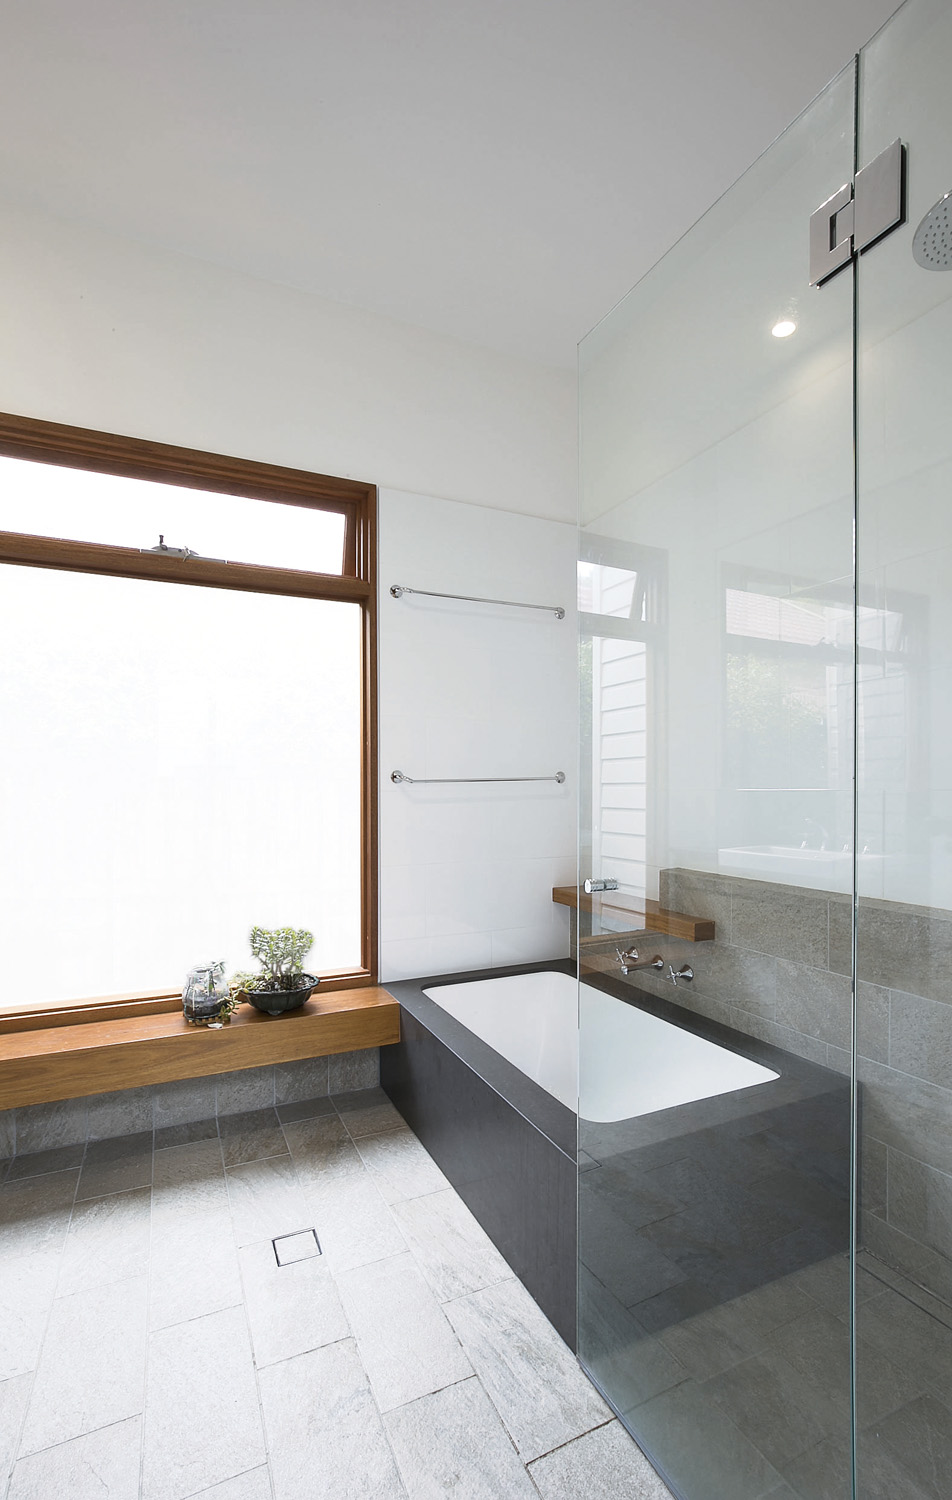 A deep-set bath is the perfect spot to soak the day away